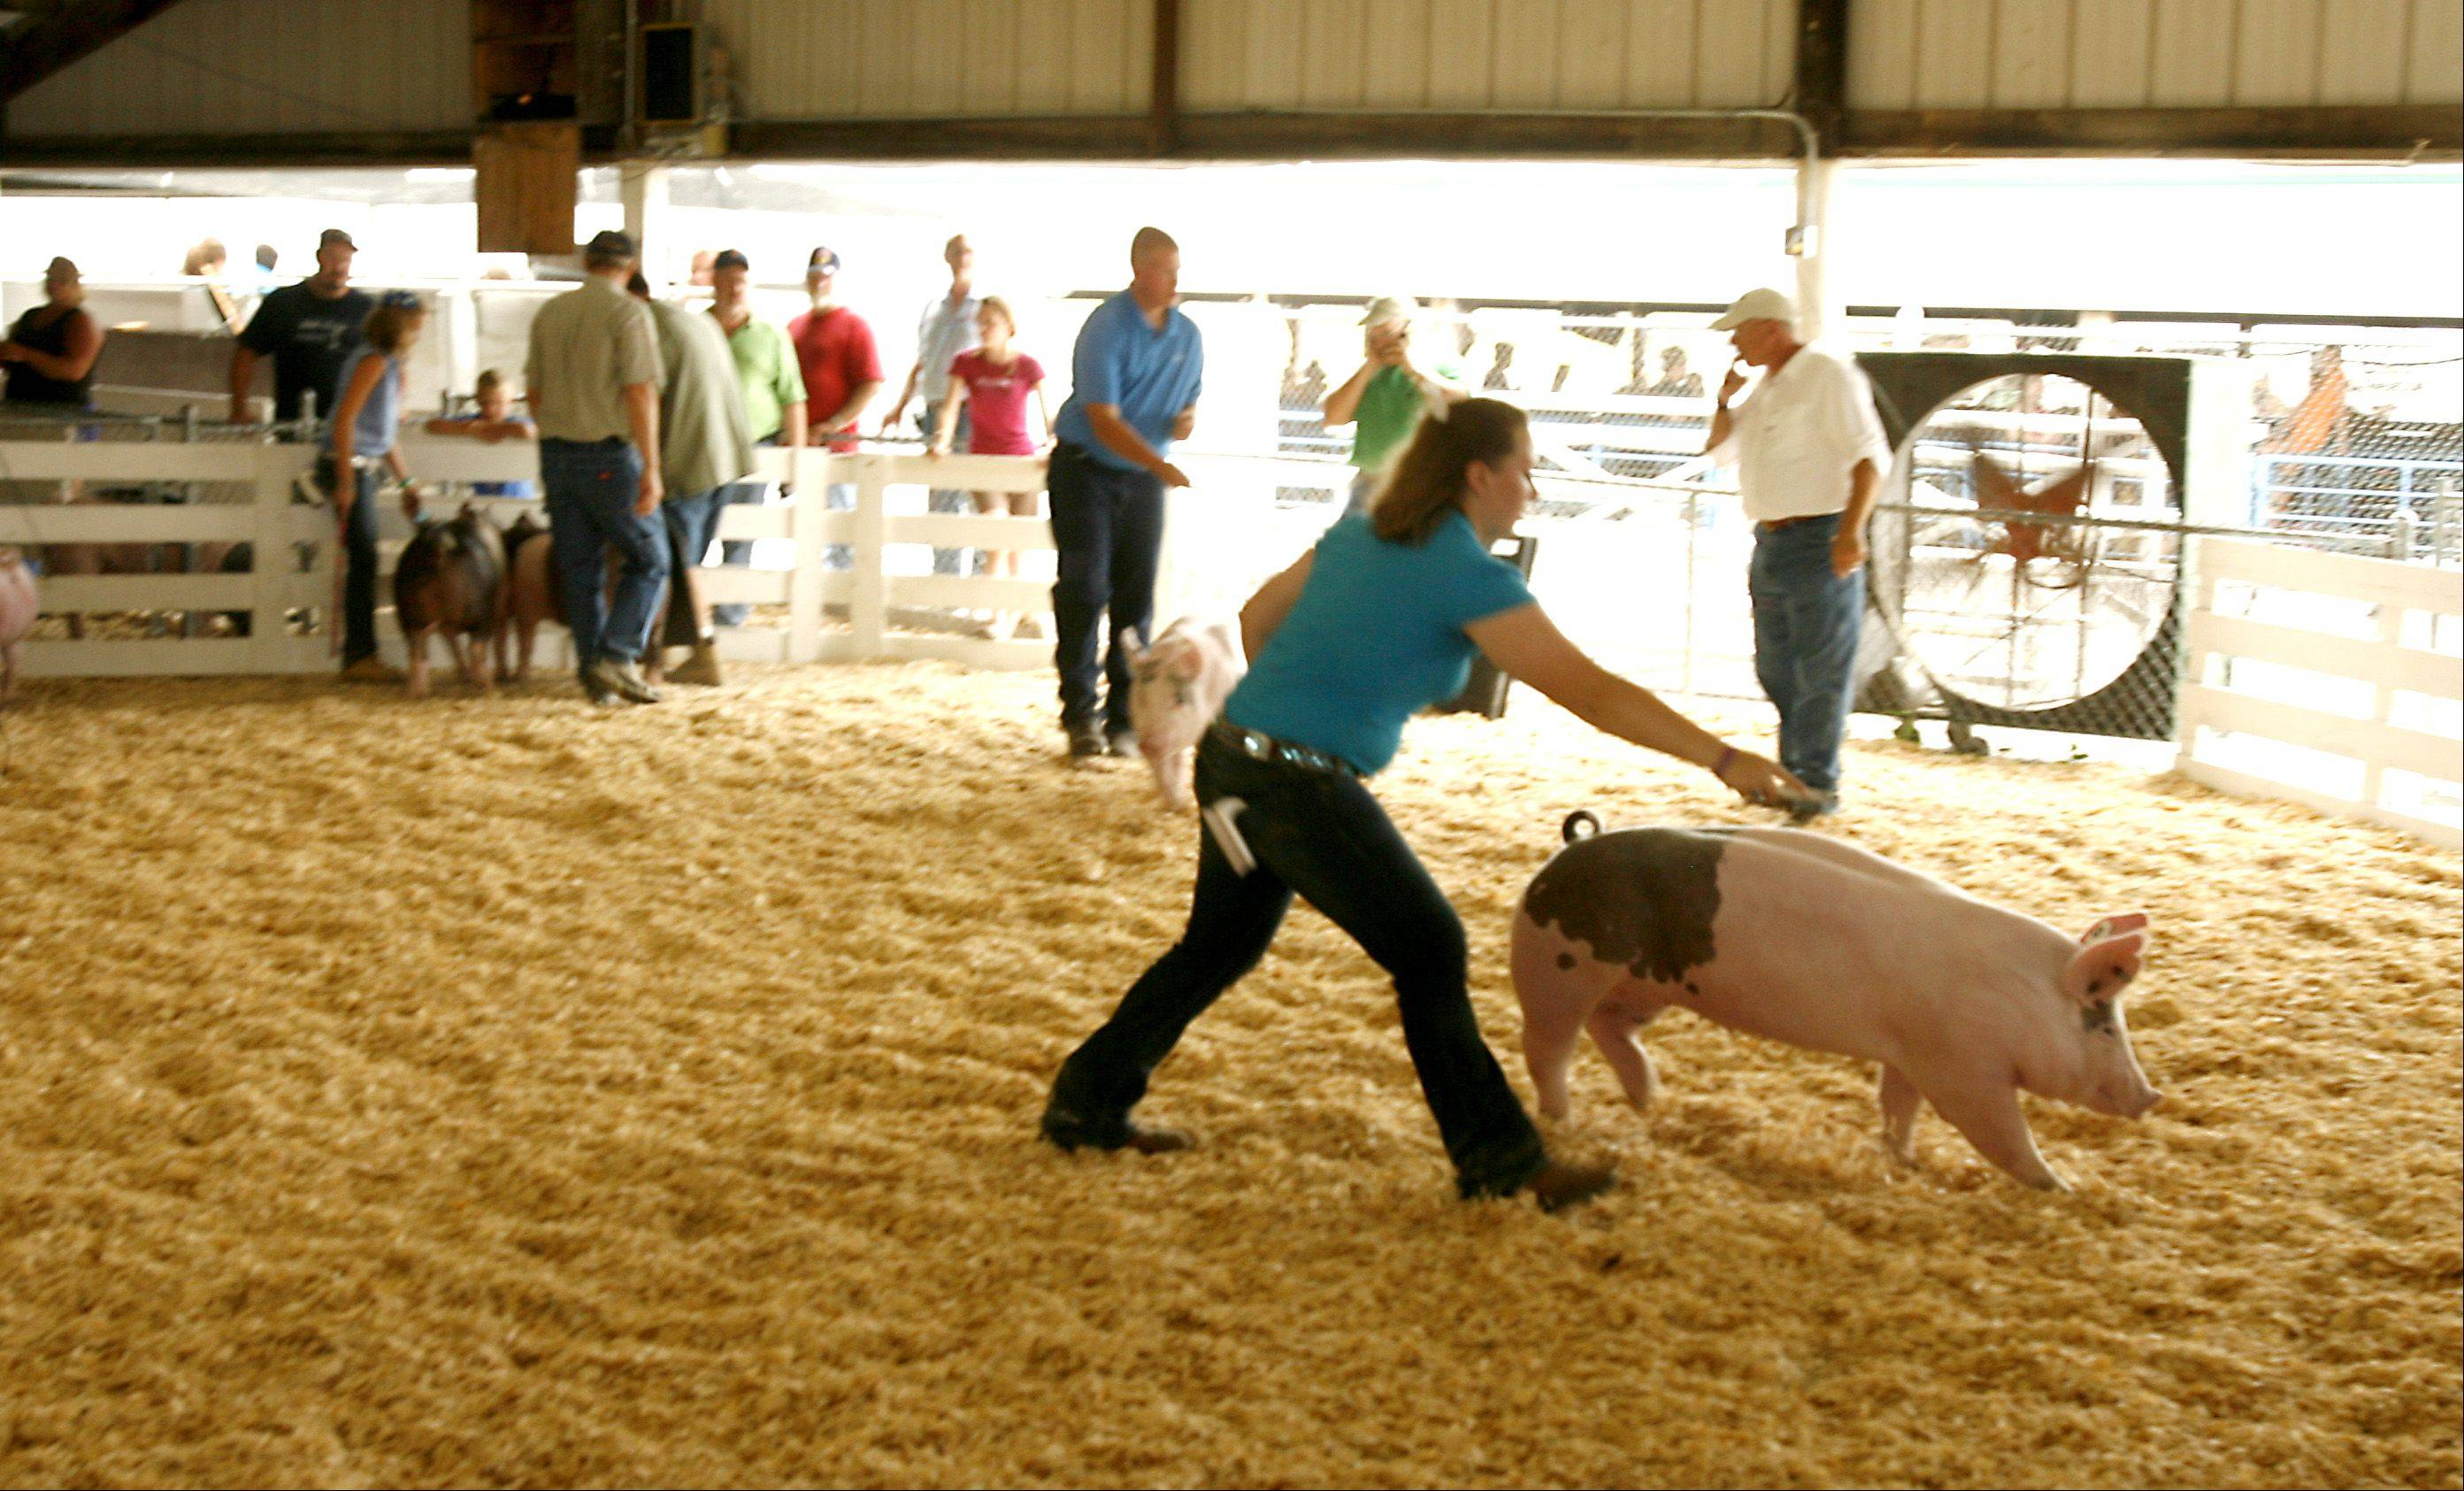 The swine judging of the junior open division begins.